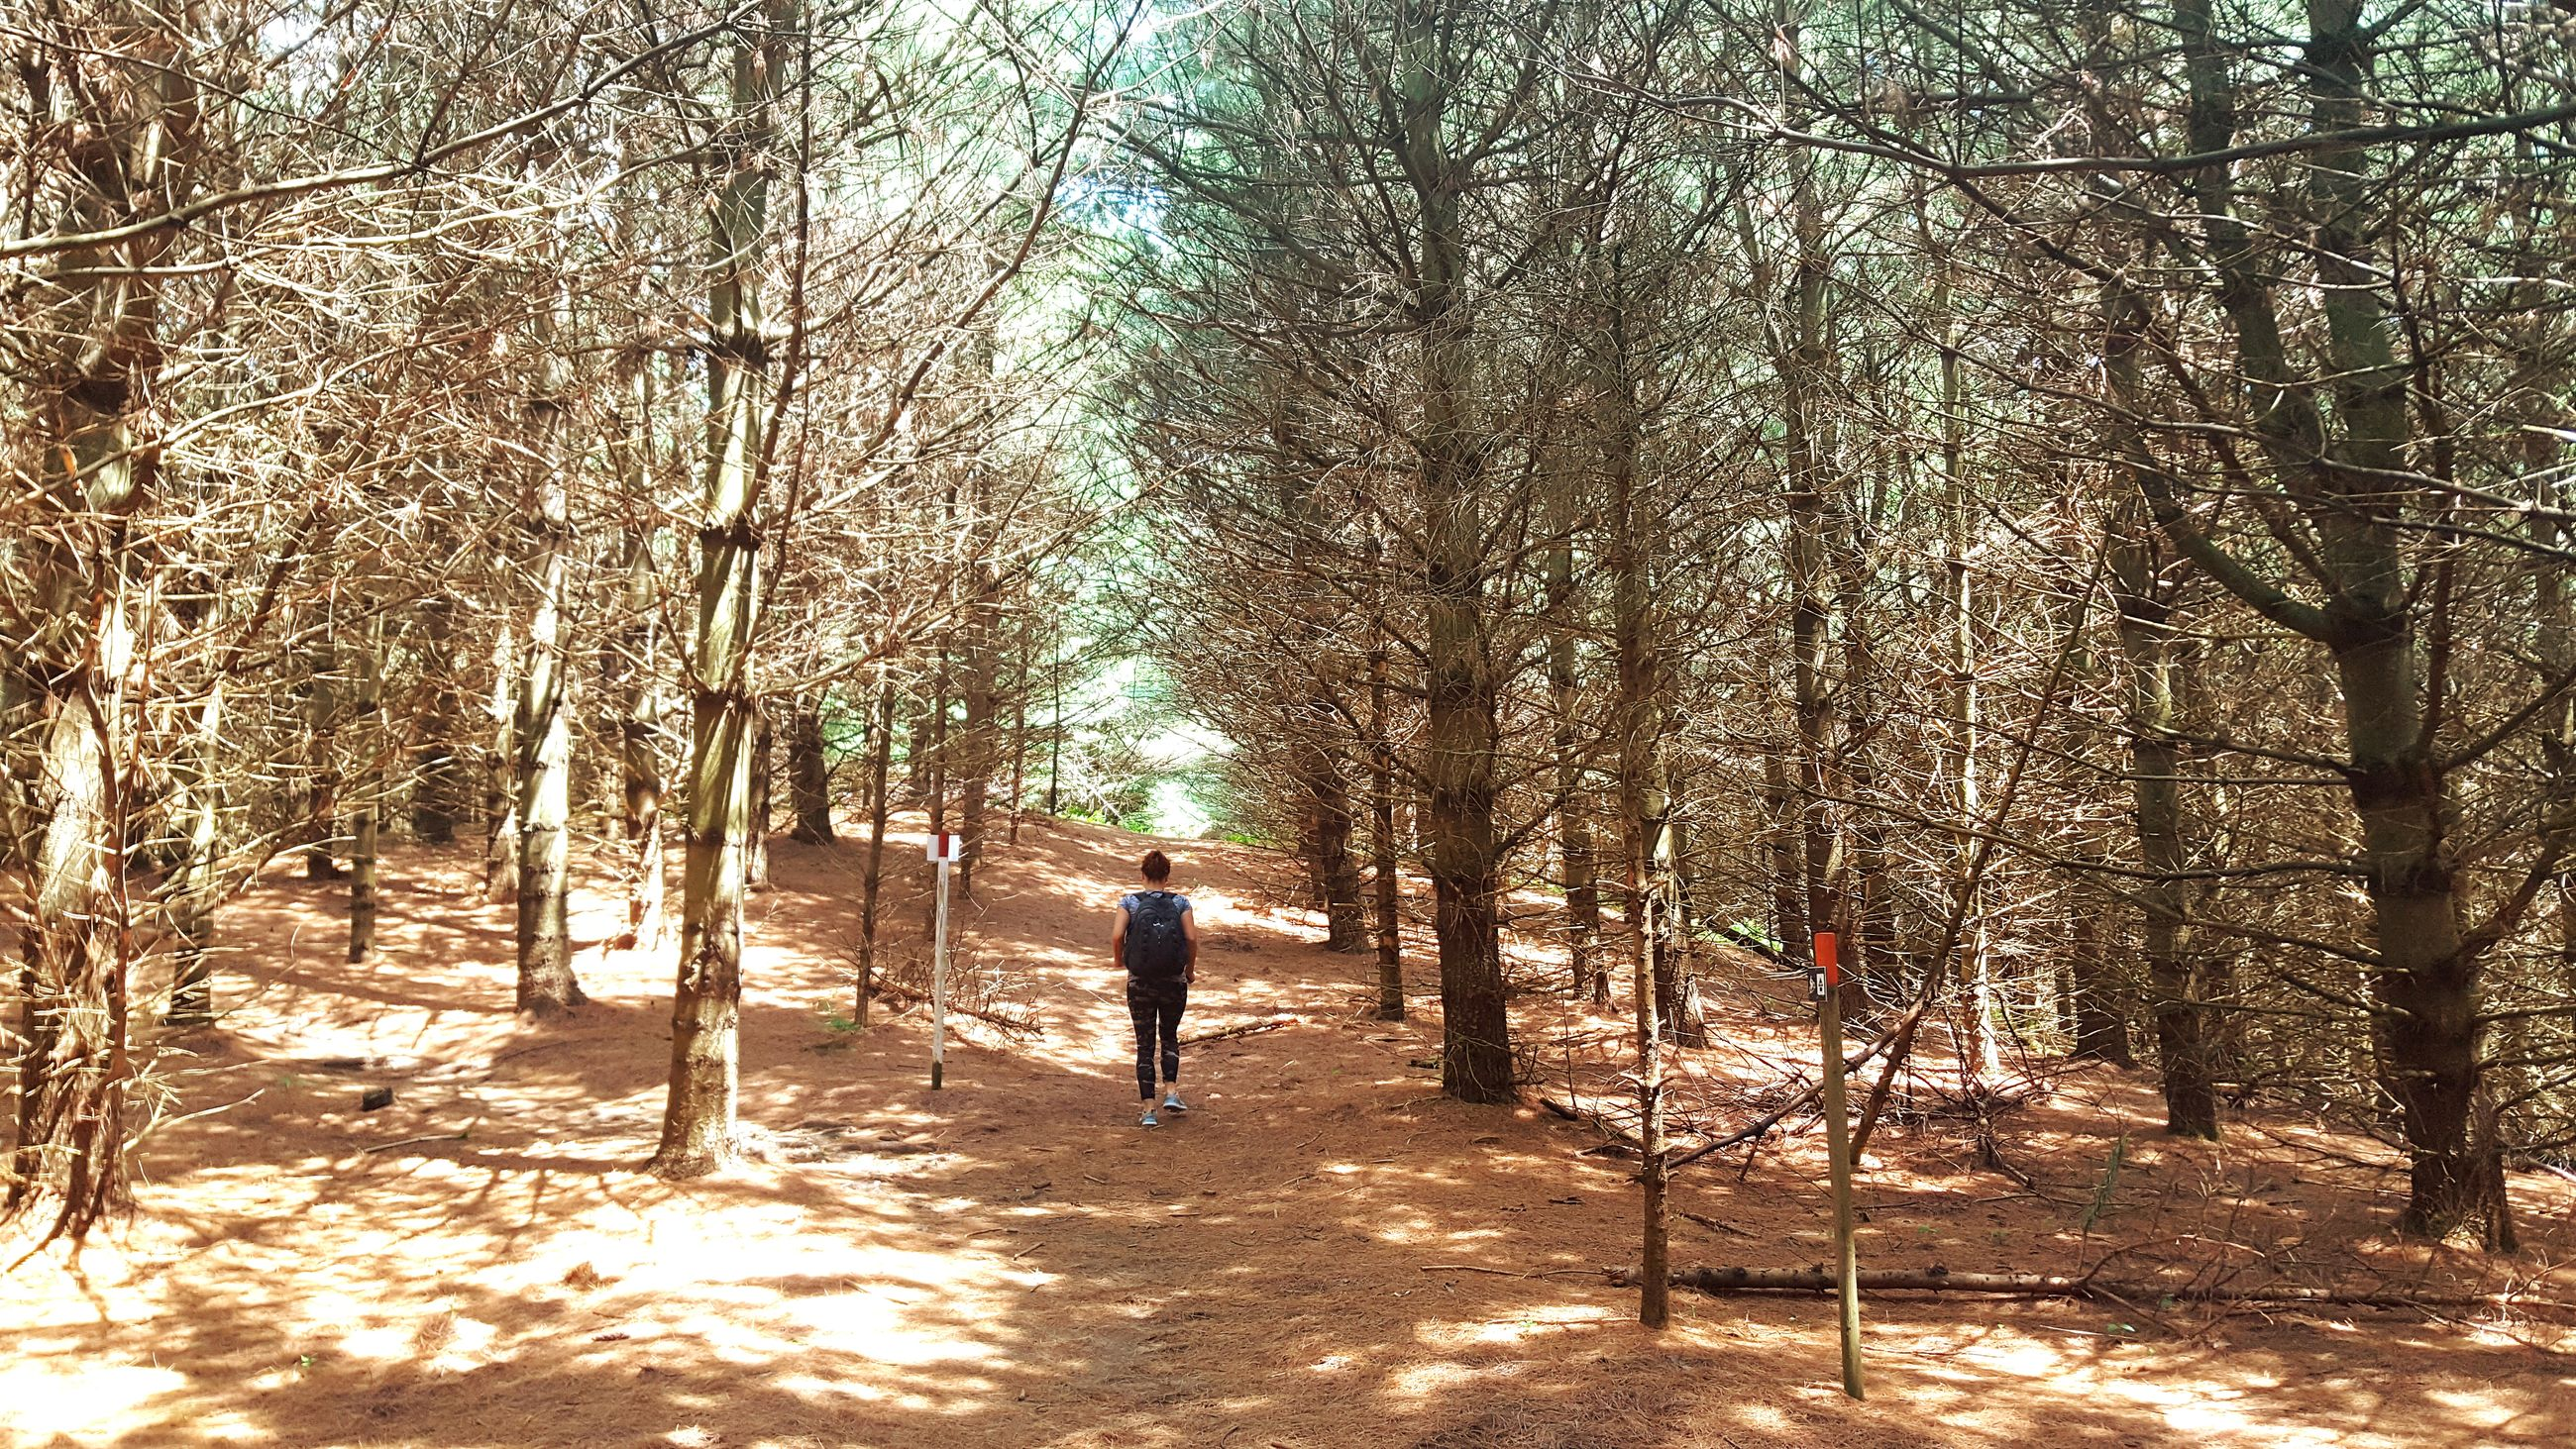 tree, bare tree, real people, one person, rear view, nature, outdoors, full length, day, men, branch, beauty in nature, people